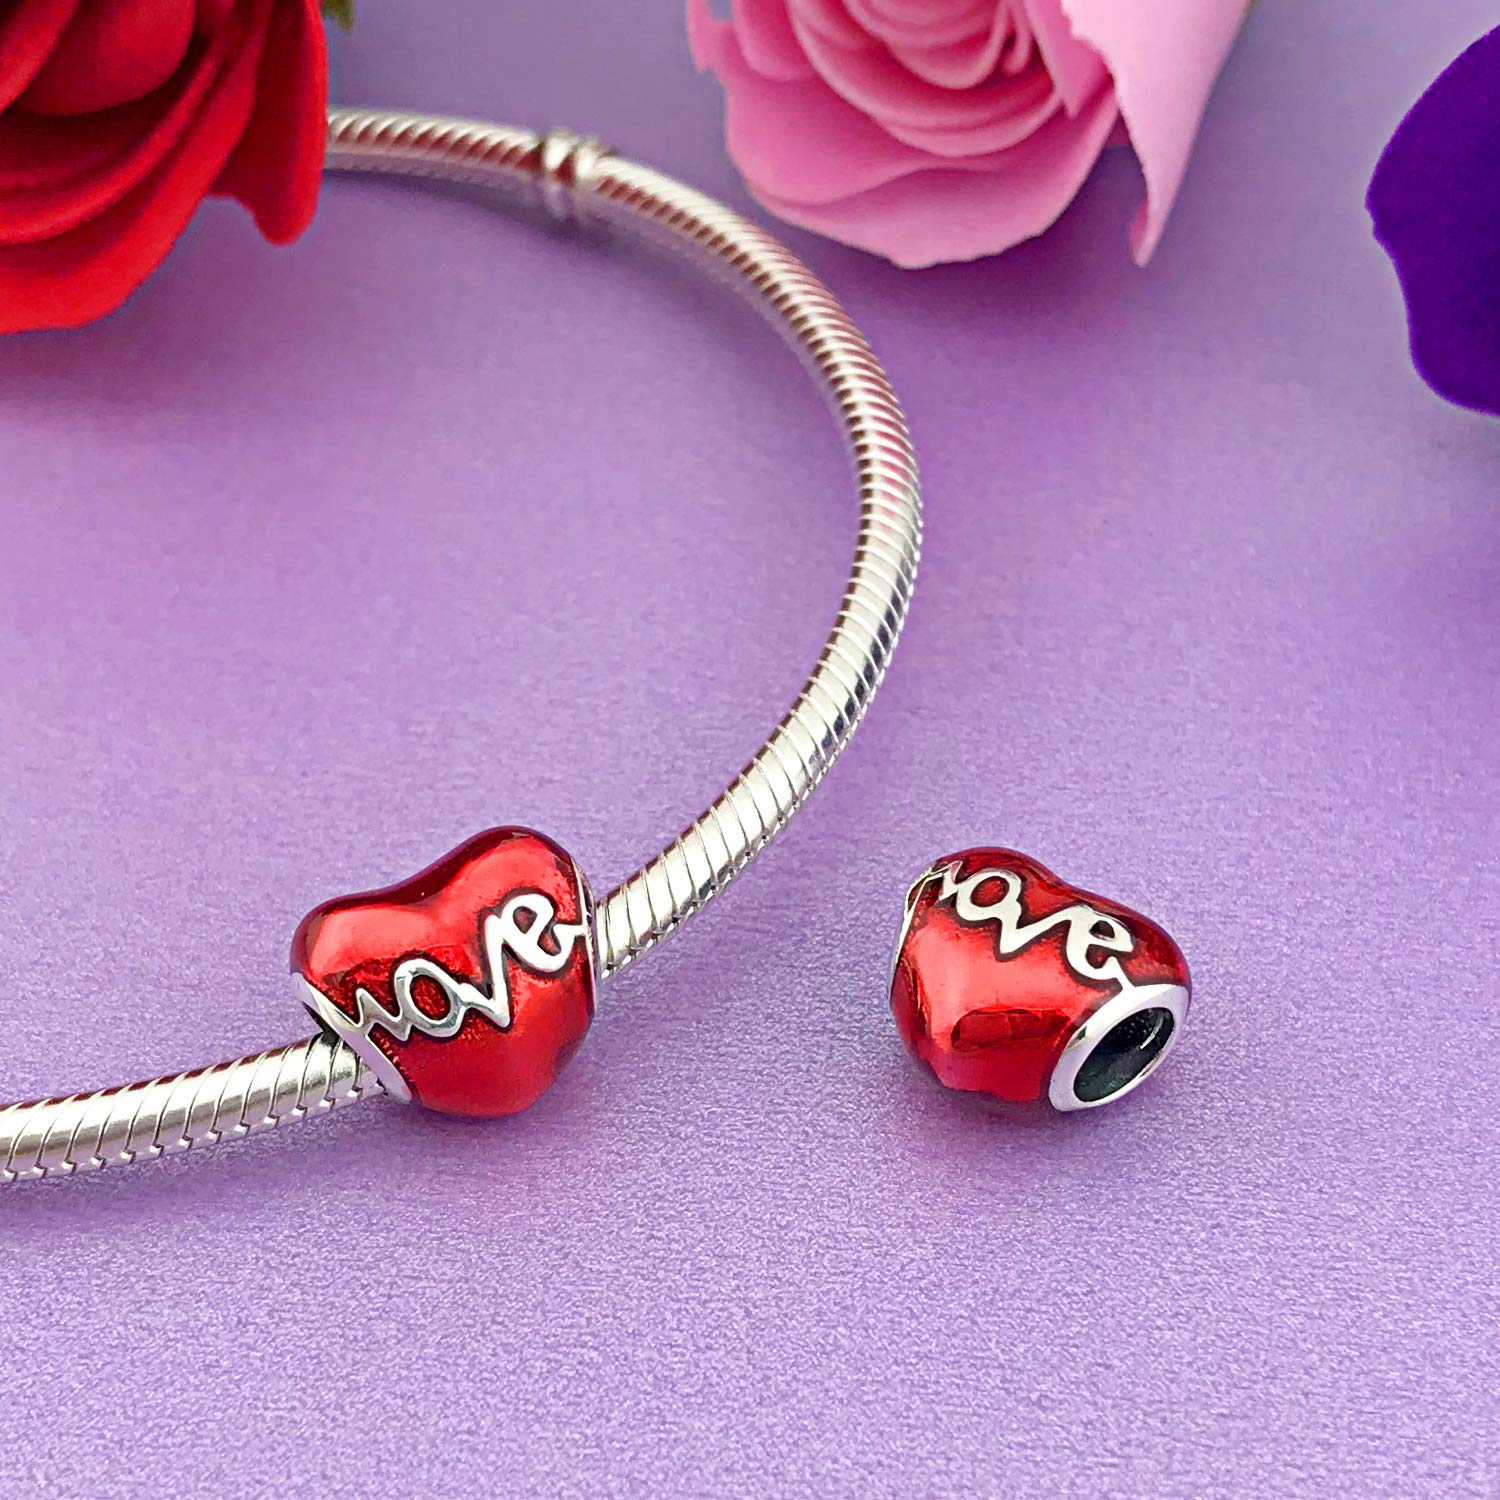 21816f3ba MallDou Jewelry 925 Sterling Silver Charm fit Pandora Charms Bracelet  Necklace Red Enamel ...